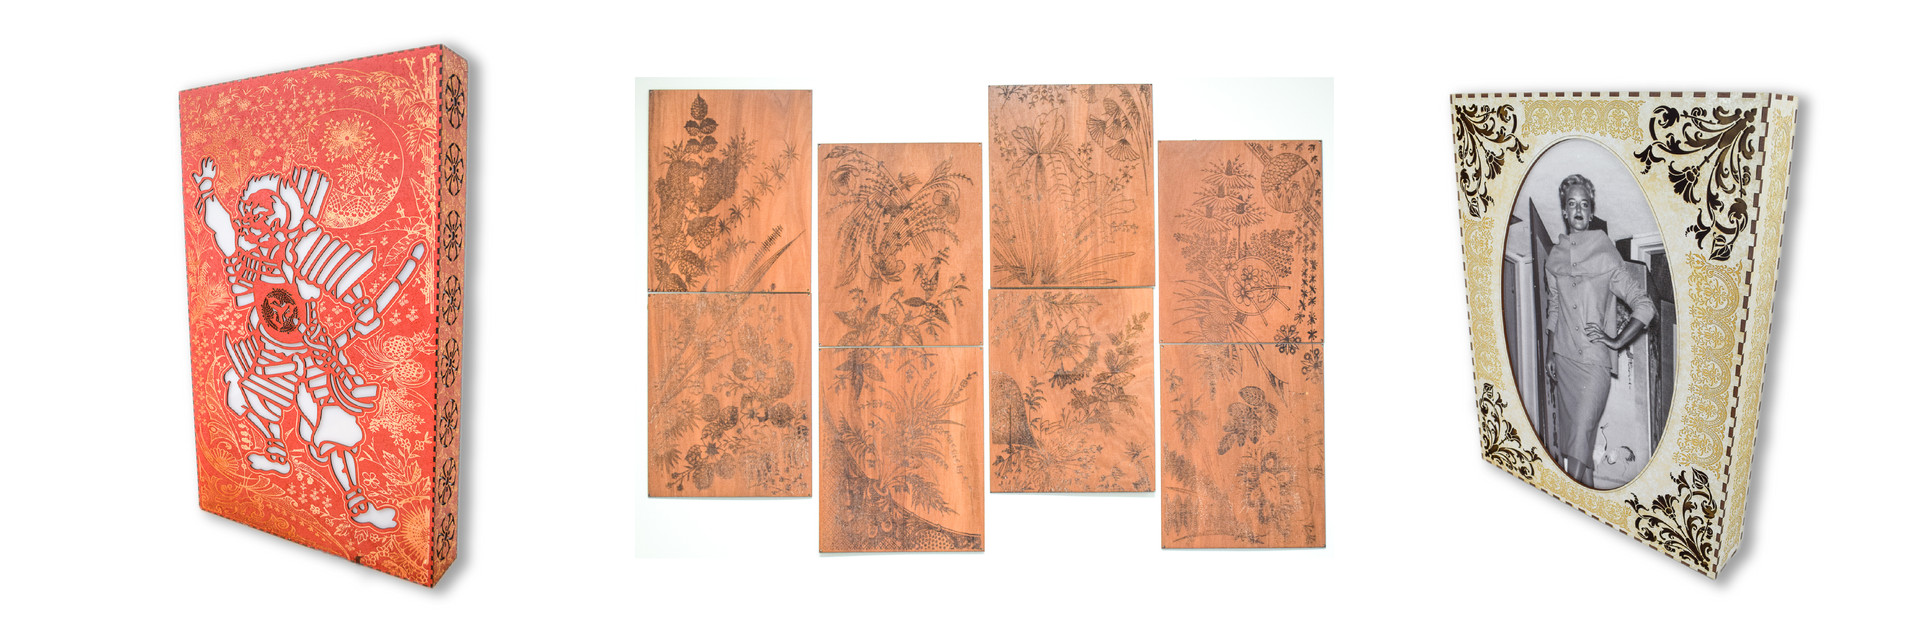 COMMISSIONED WOOD ETCHED ART PIECES